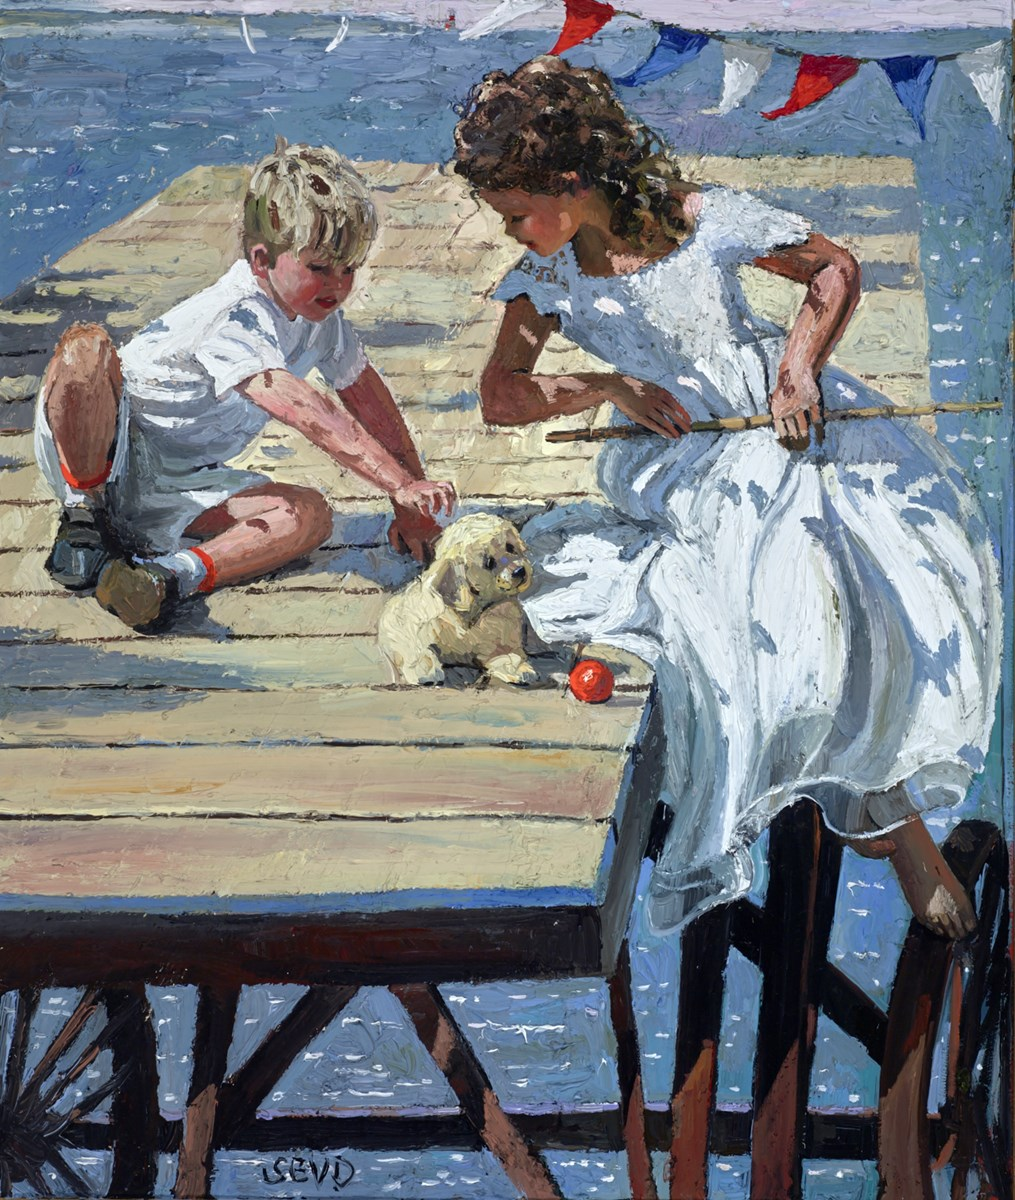 Playing on the Jetty by sherree valentine daines -  sized 22x26 inches. Available from Whitewall Galleries